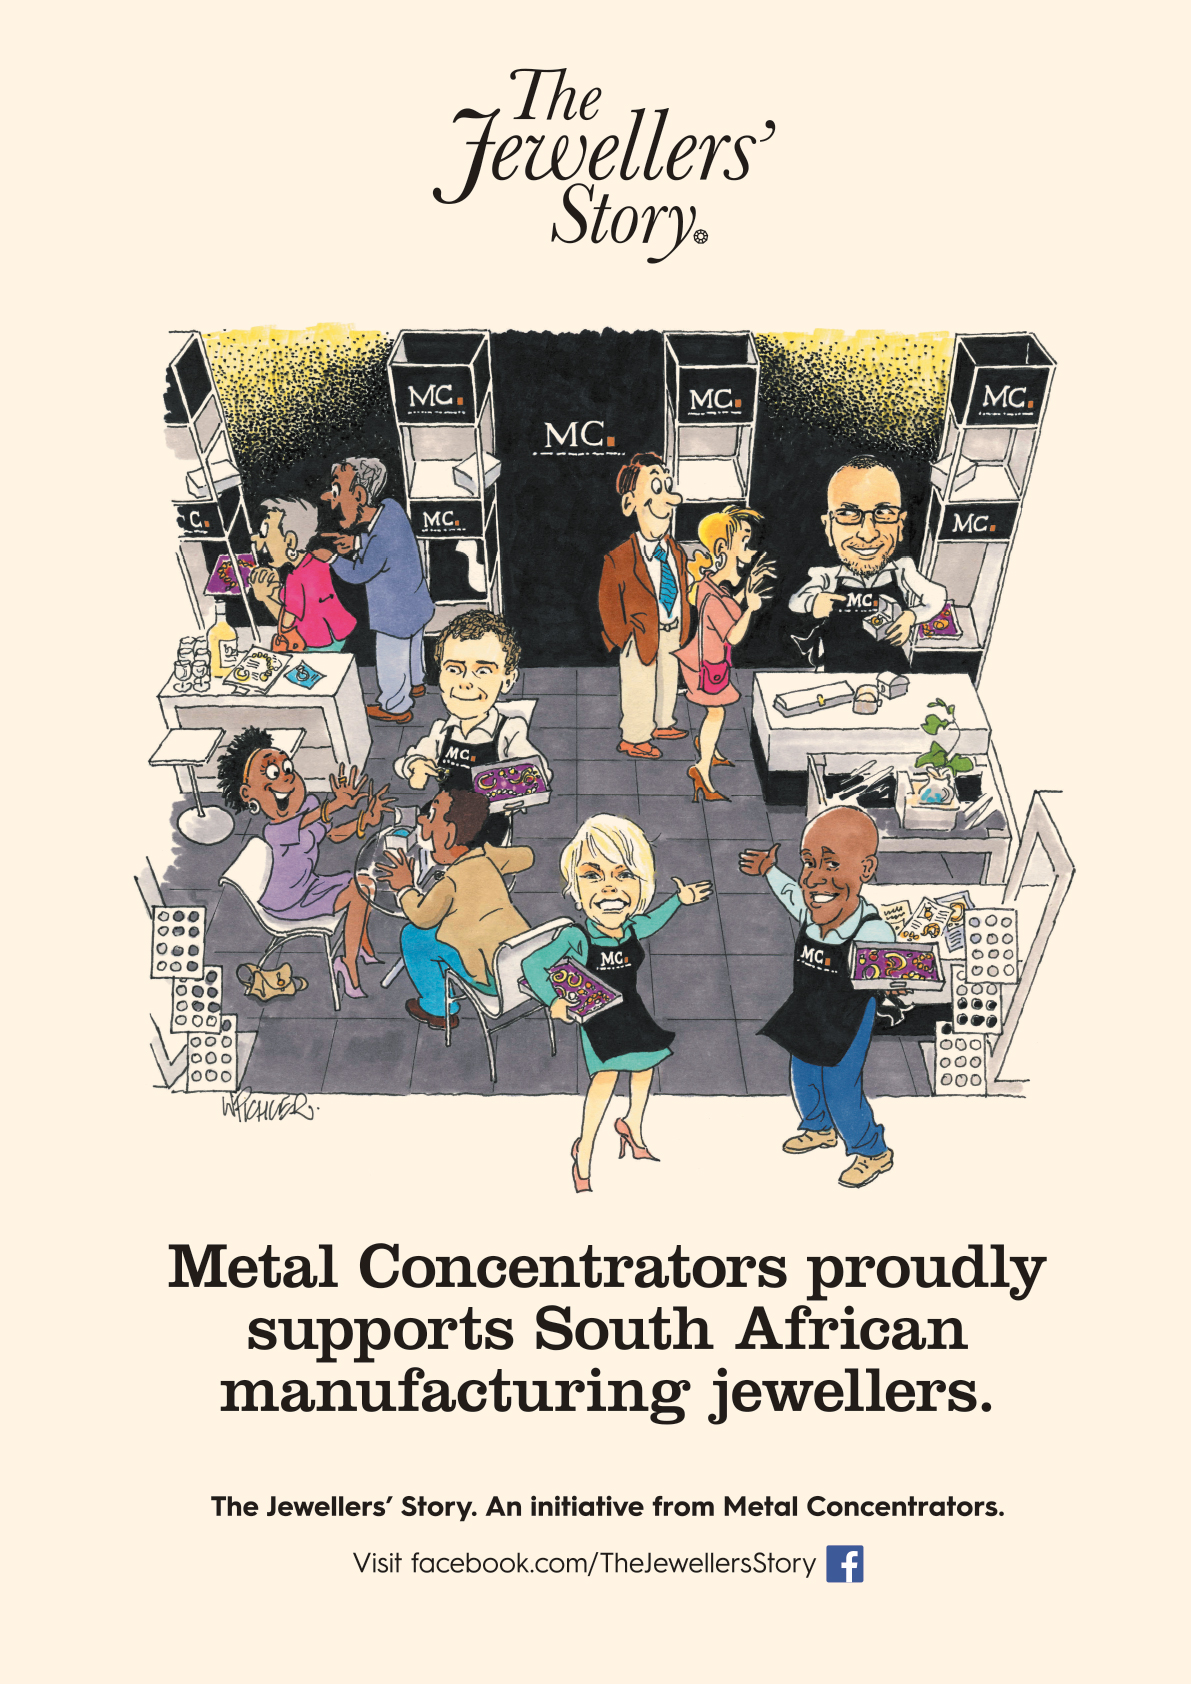 Metal Concentrators proudly supports South African manufacturing jewellers